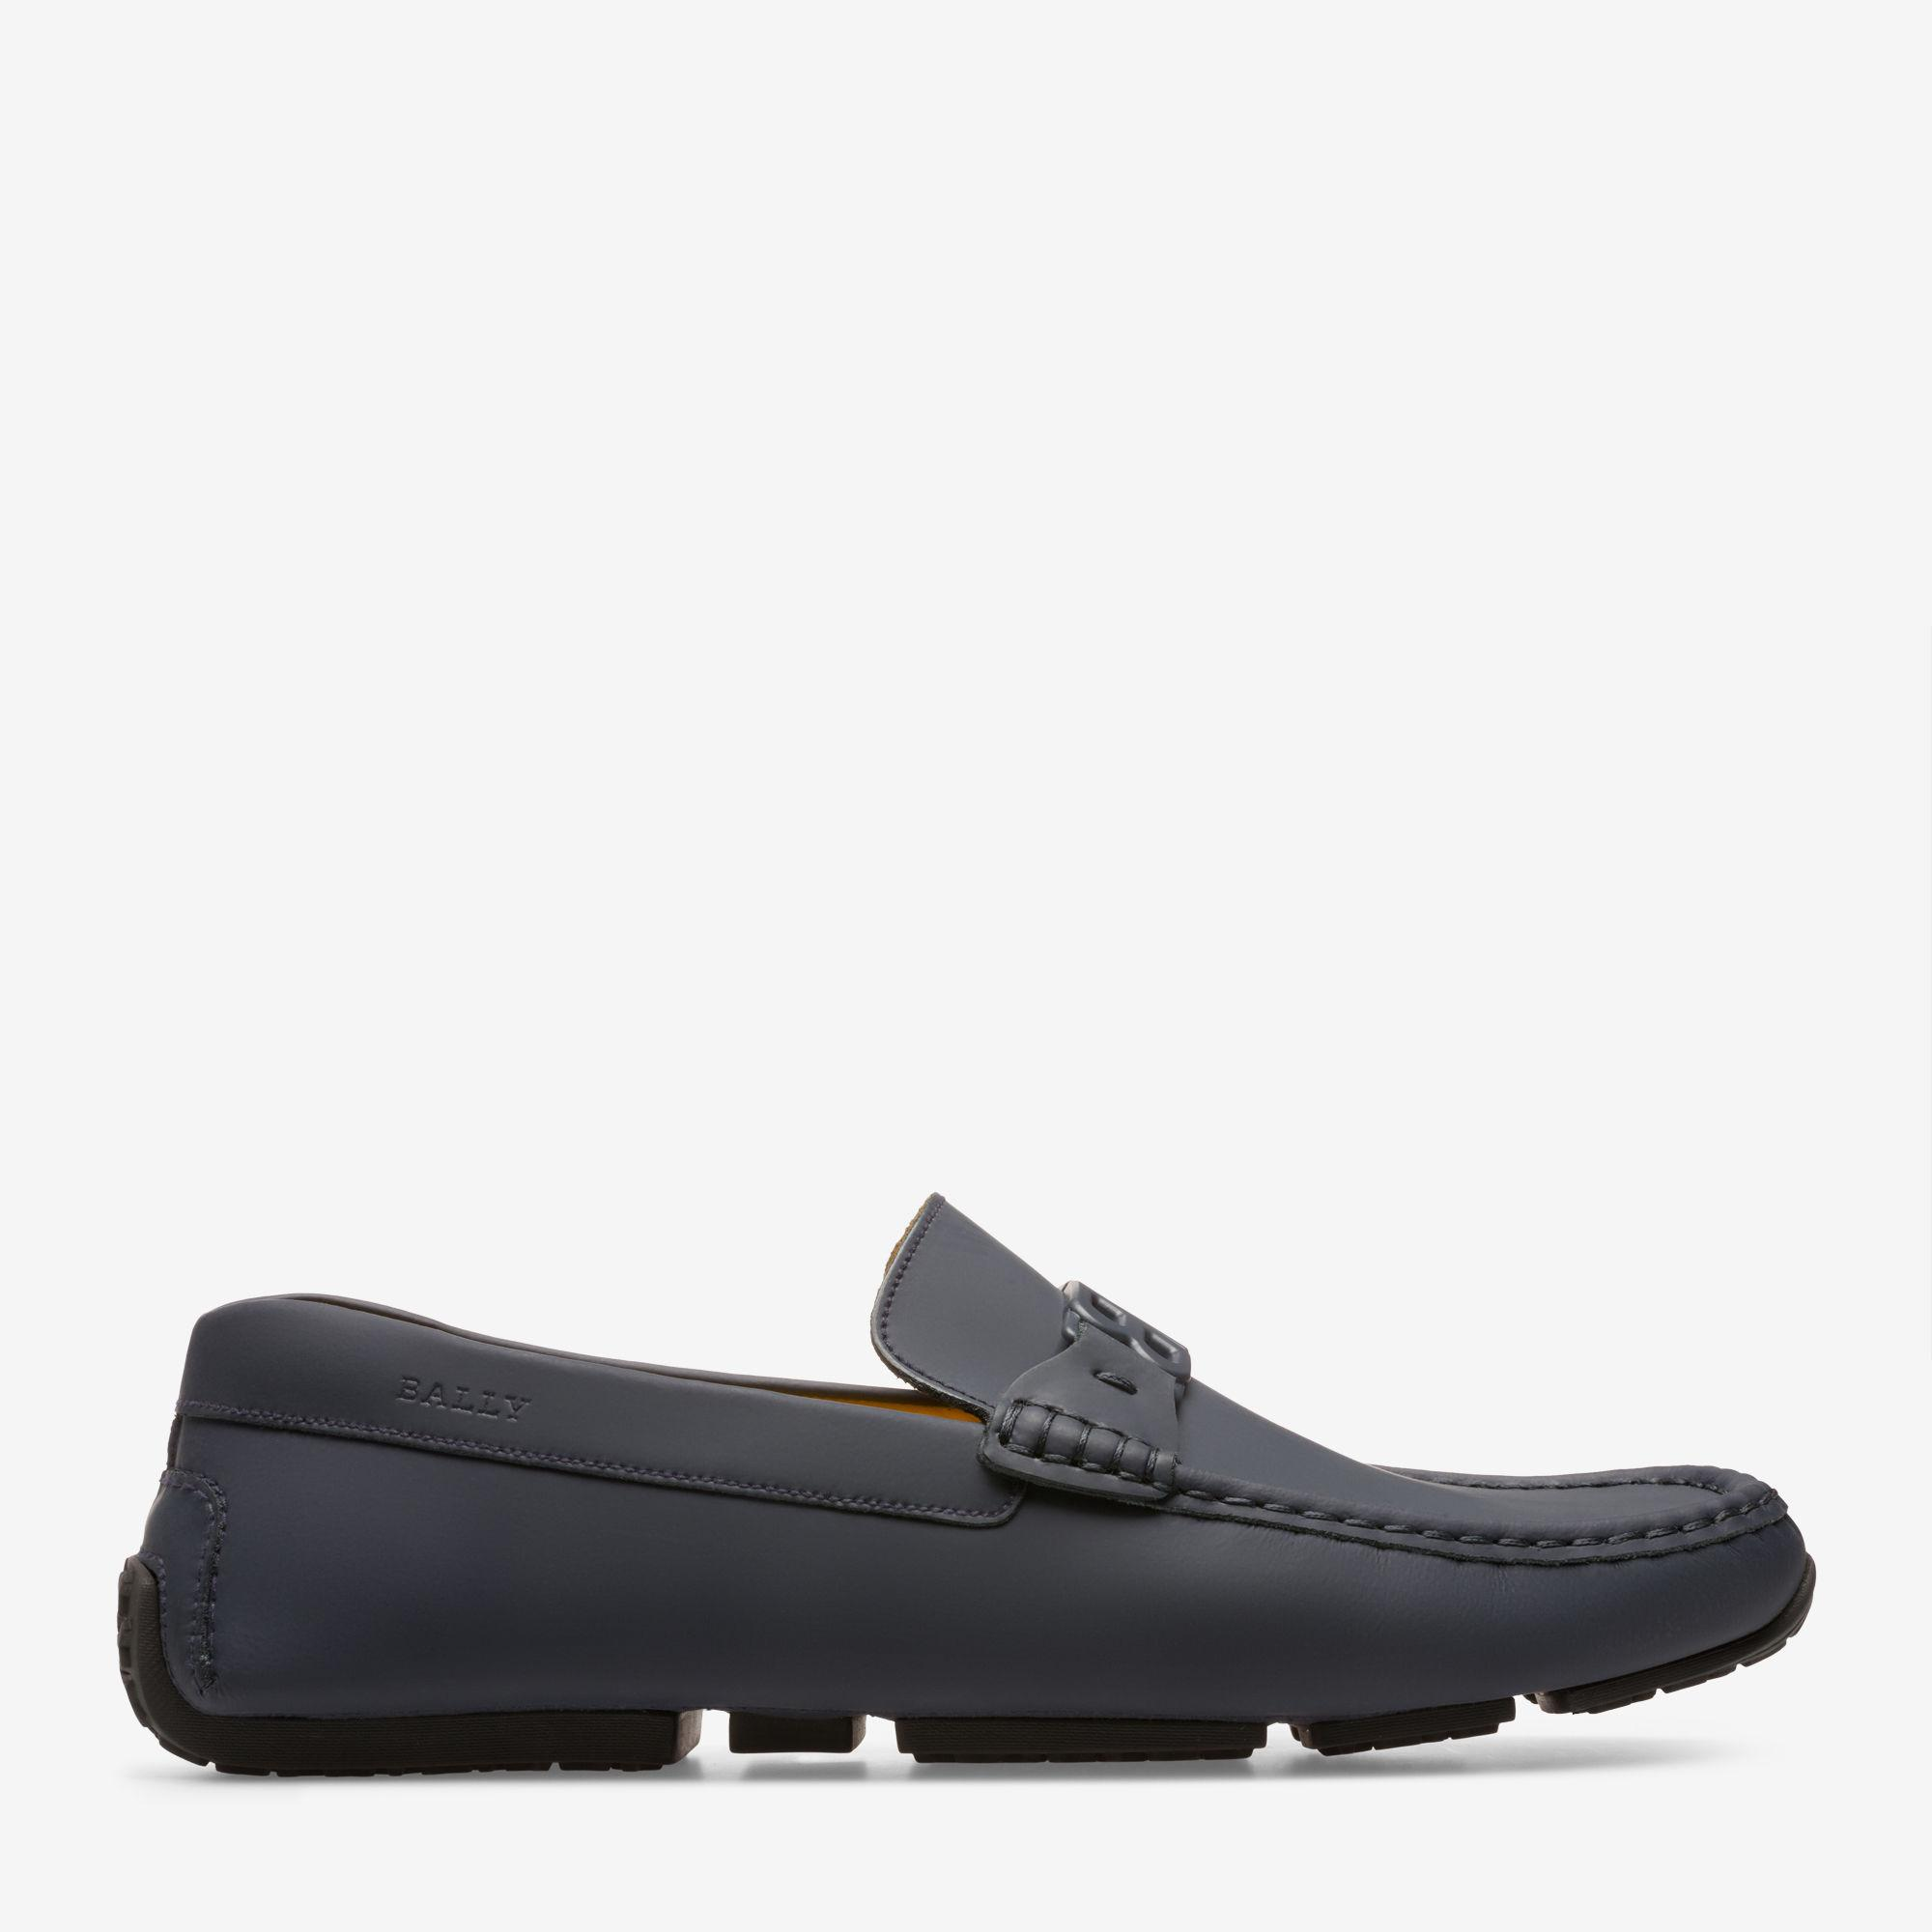 Pericles Black, Mens rubber-coated calf leather driver in black Bally